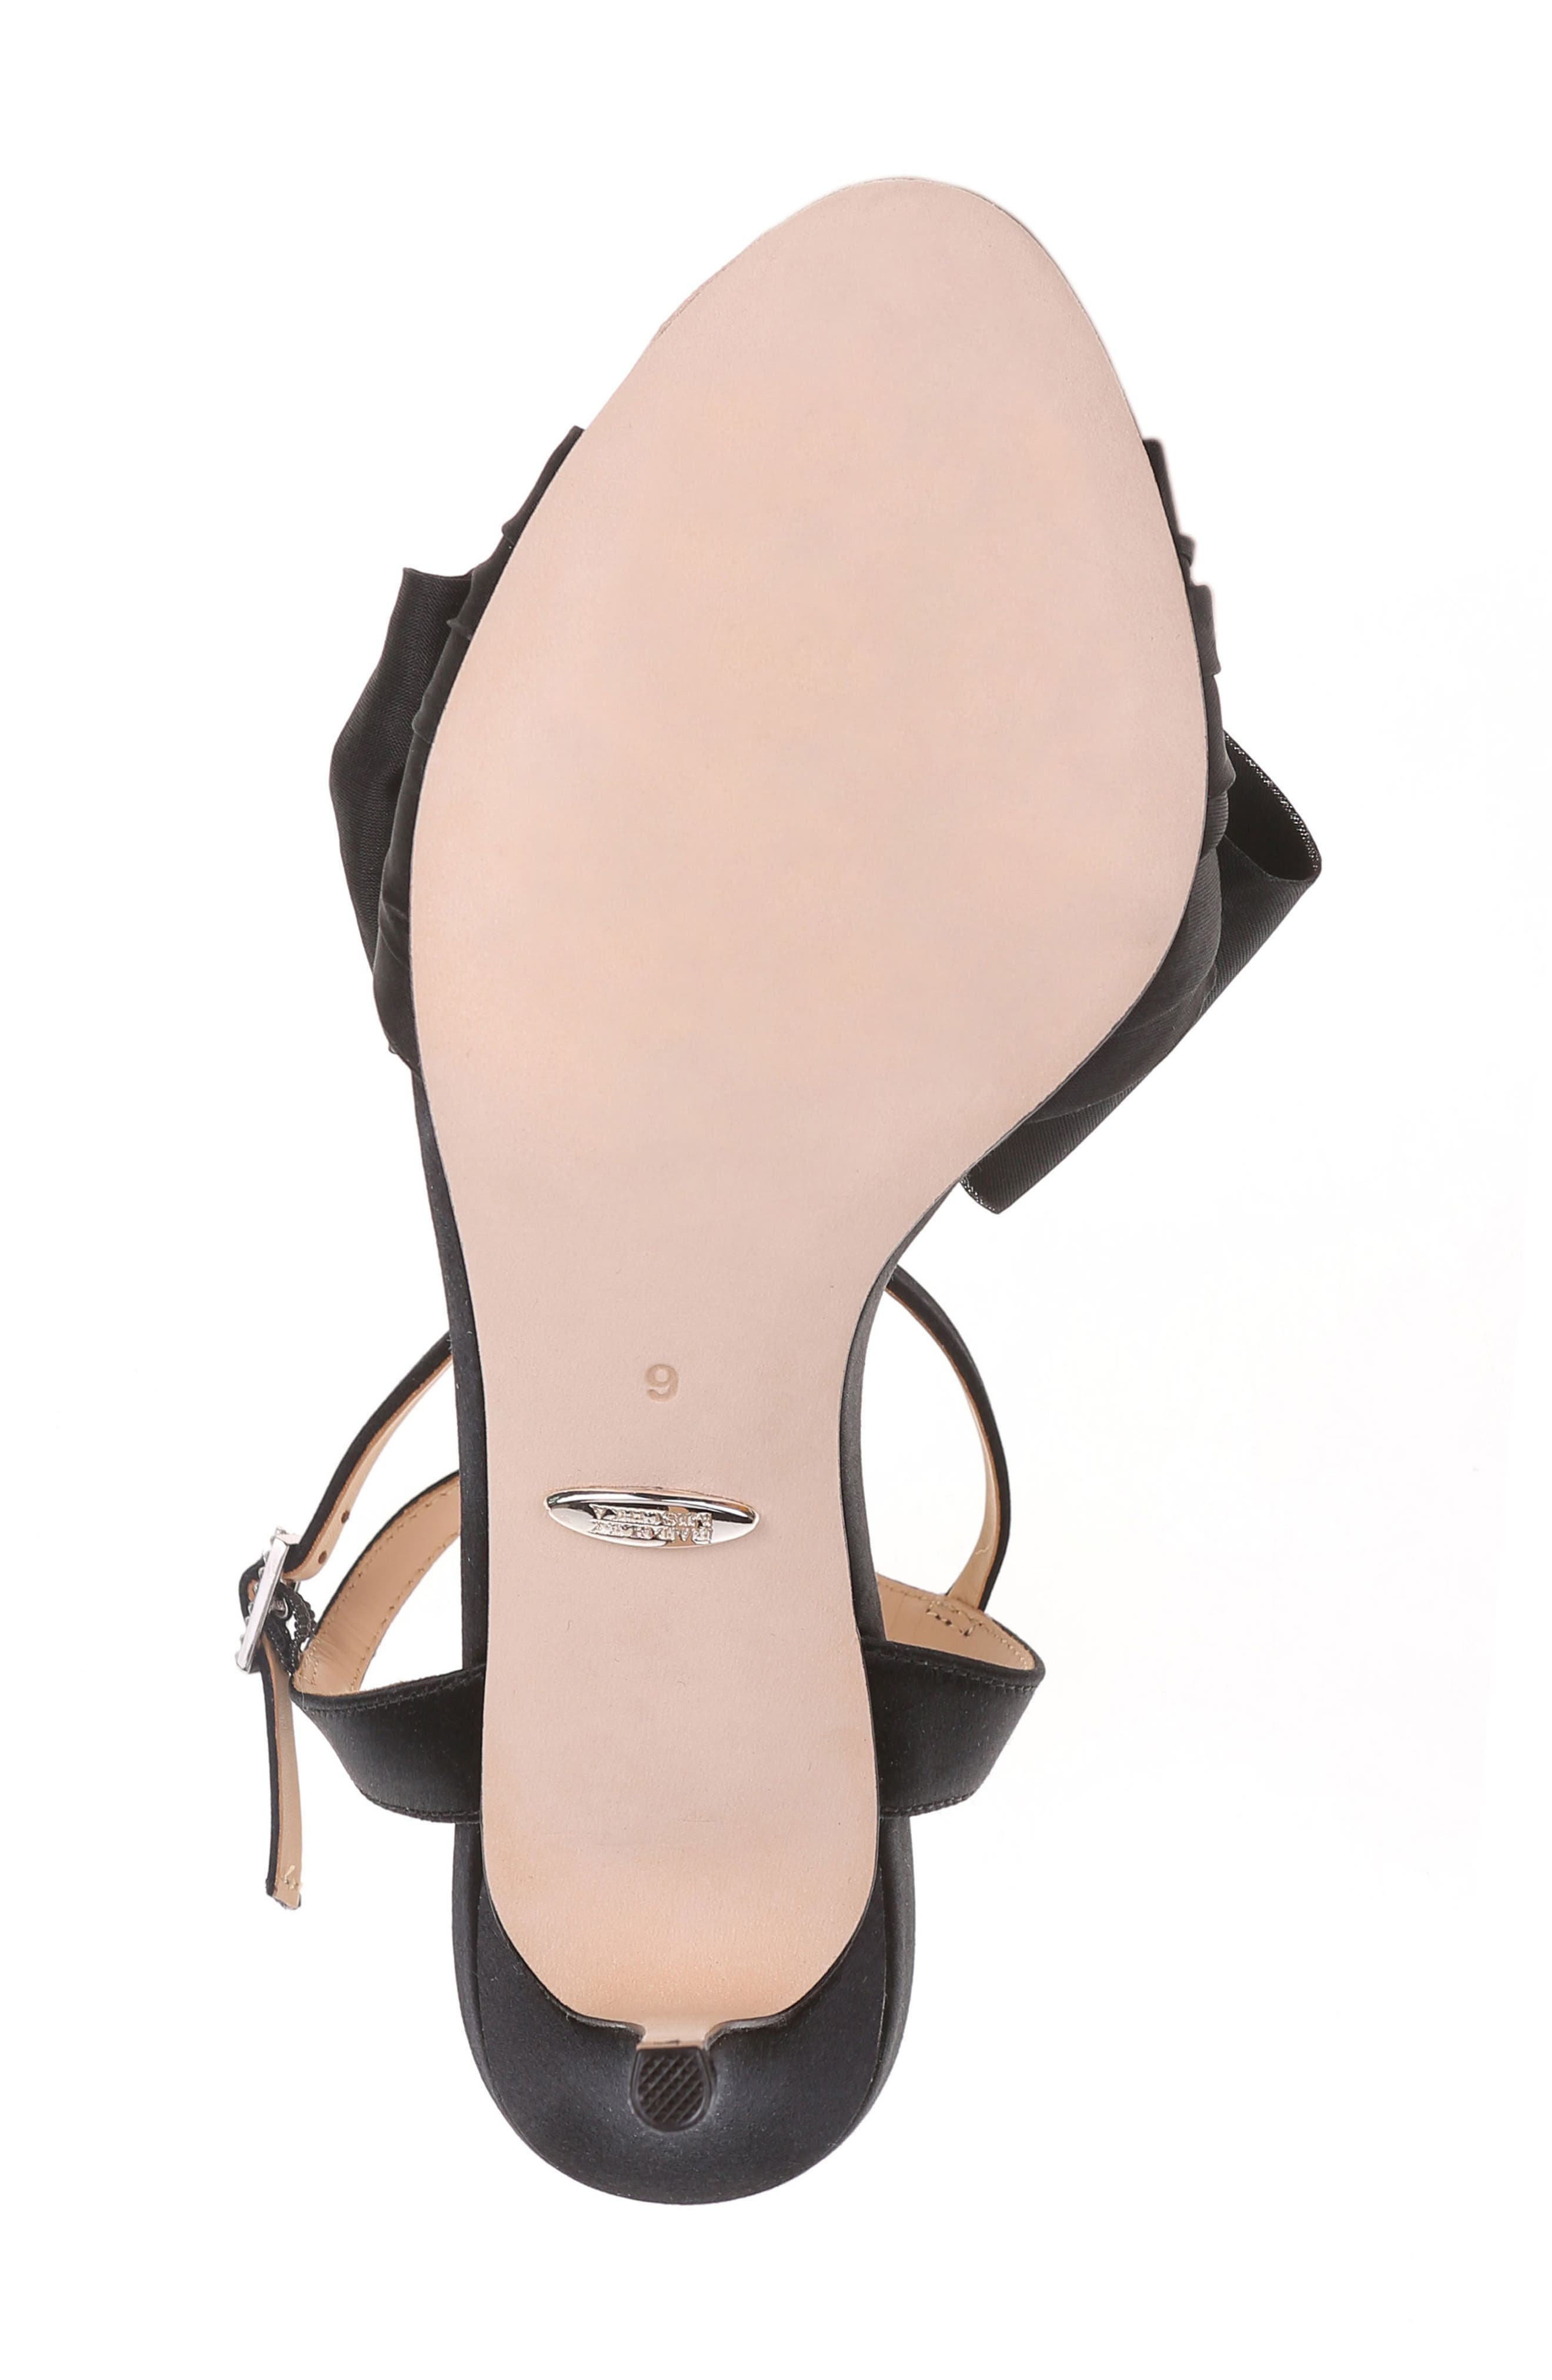 Samantha Strappy Sandal,                             Alternate thumbnail 6, color,                             015